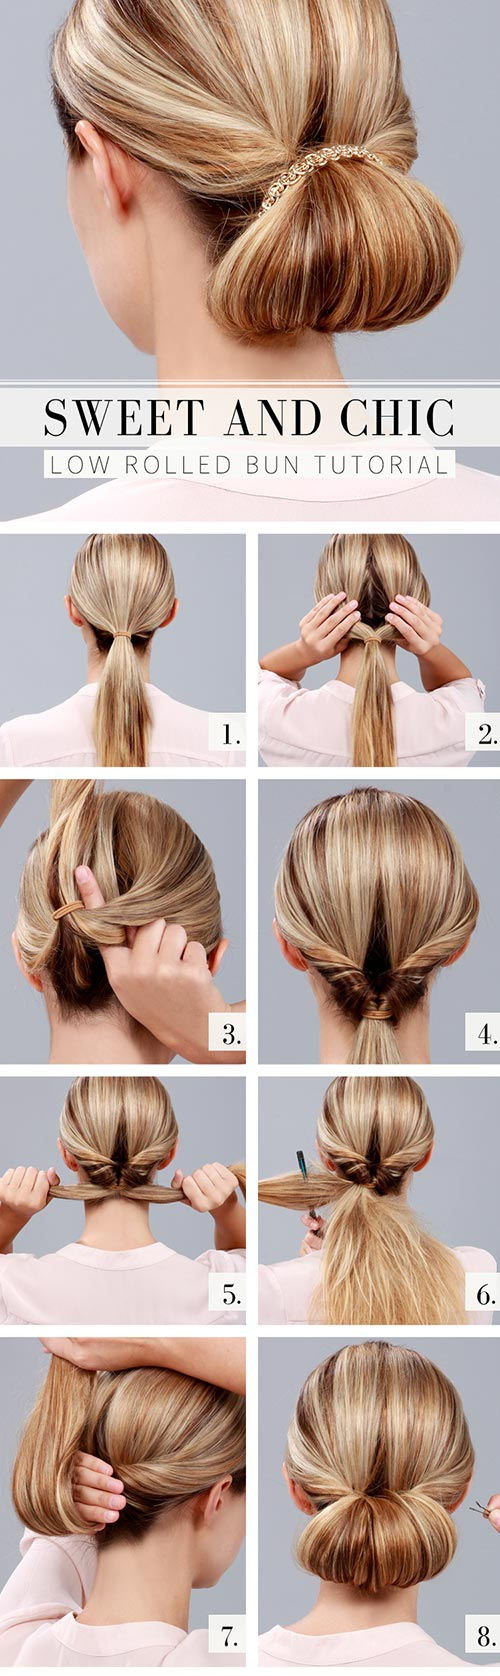 Sensational Simple Hairstyle Tutorials For Every Occasion Beauty Tips Hair Care Short Hairstyles For Black Women Fulllsitofus